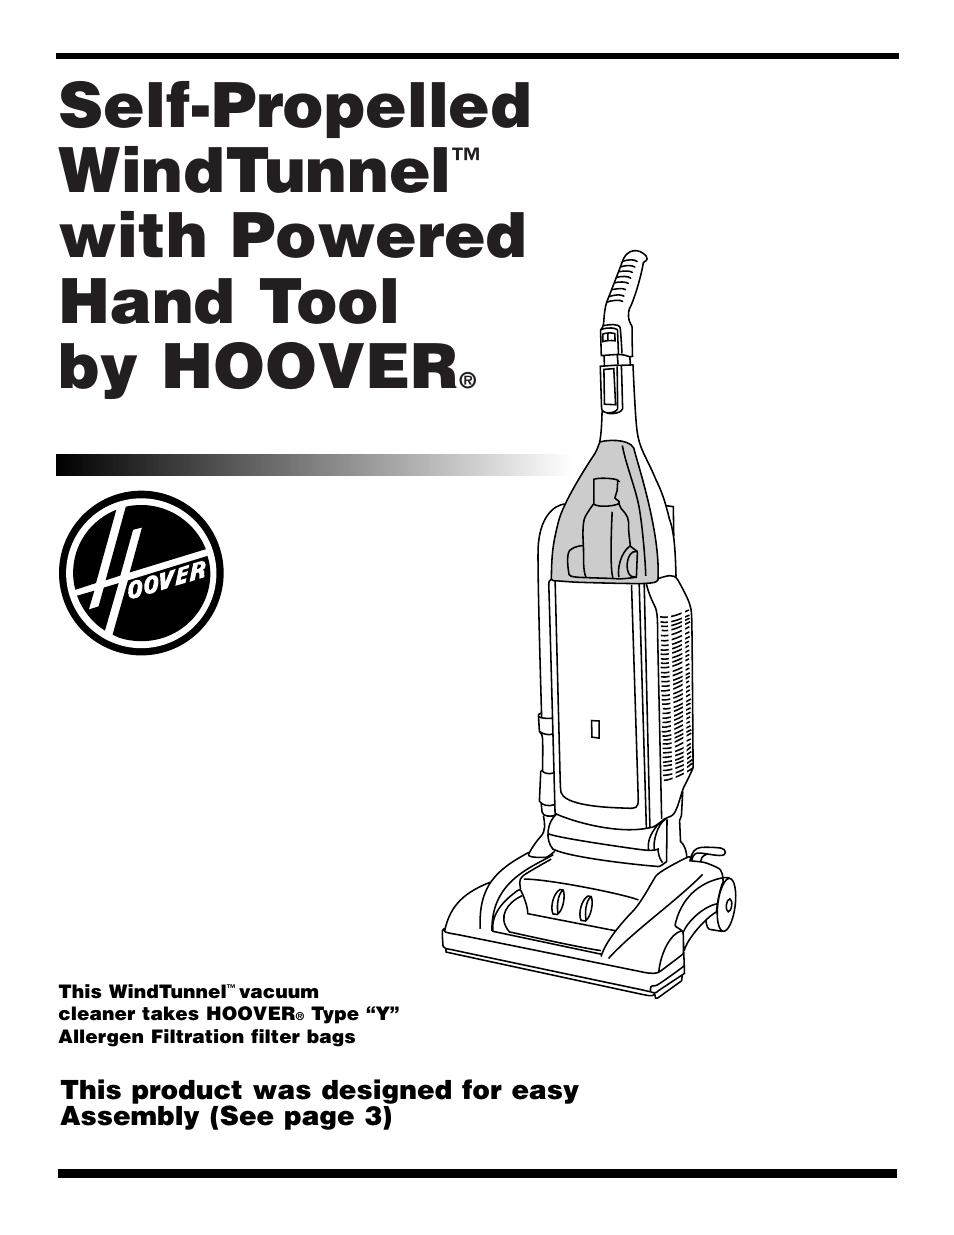 Hoover WindTunnel Wind Tunnel vacuum cleaner User Manual